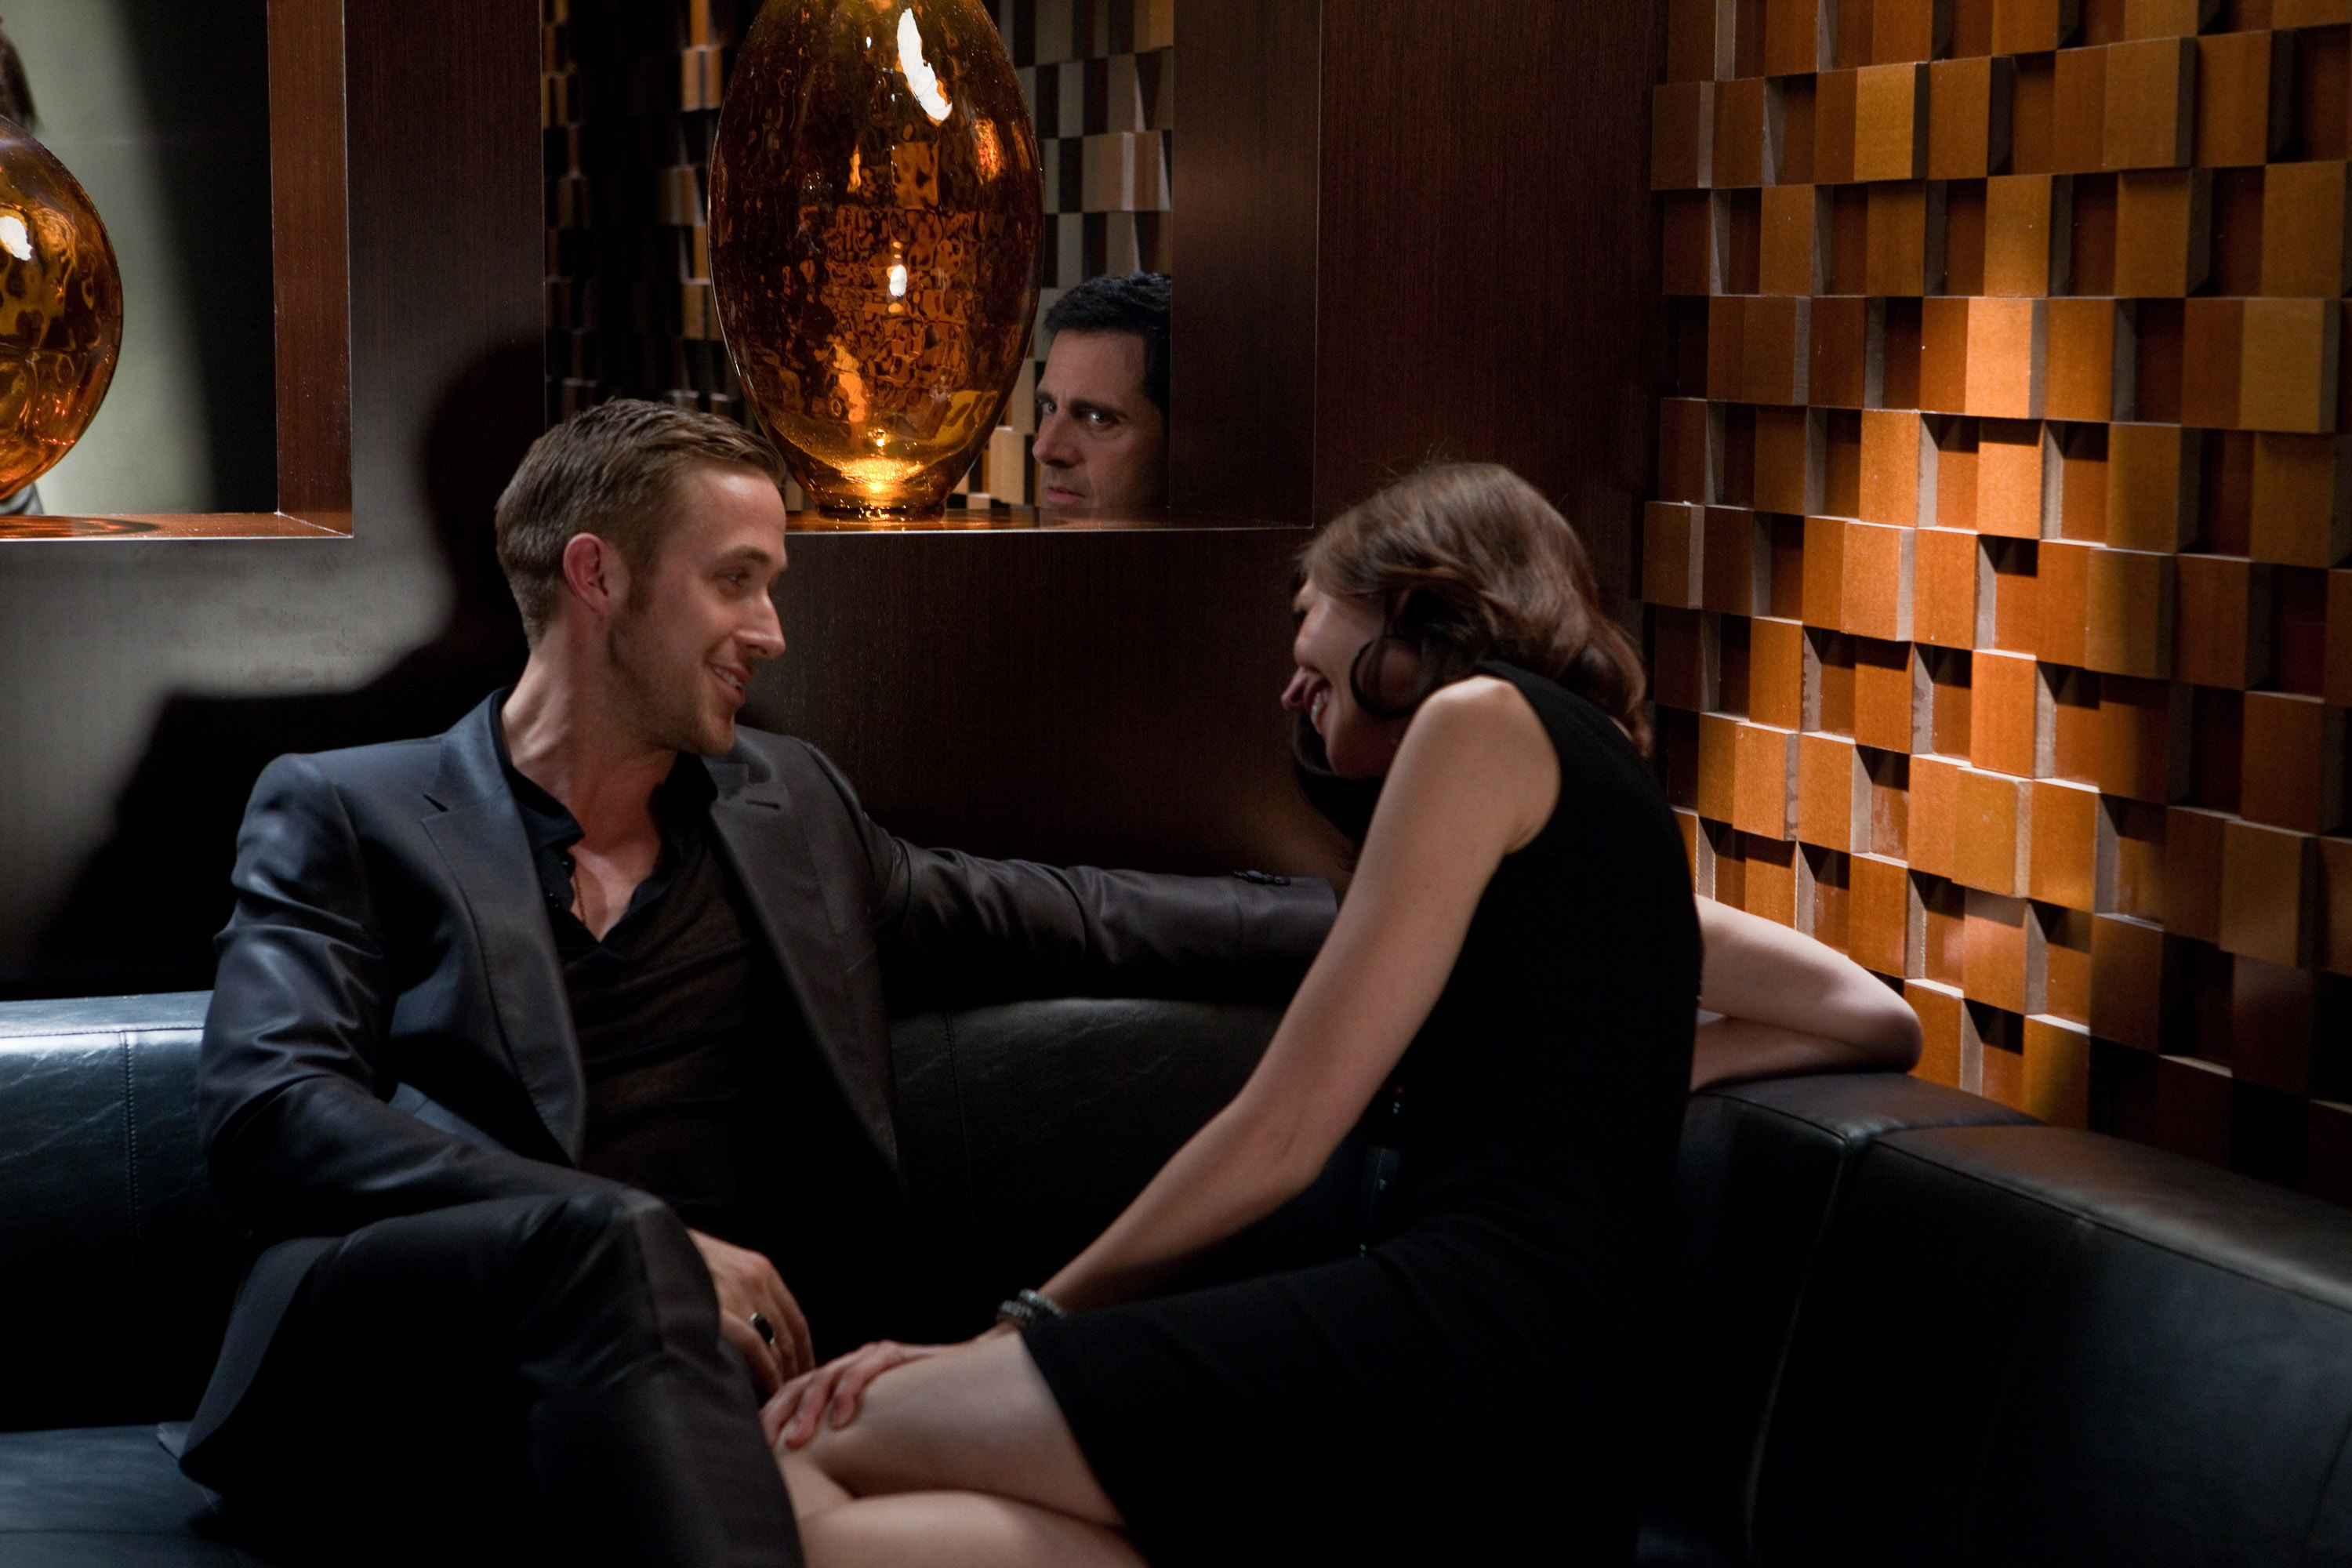 Love make in stupid does crazy ryan gosling what drink THE LOVELY